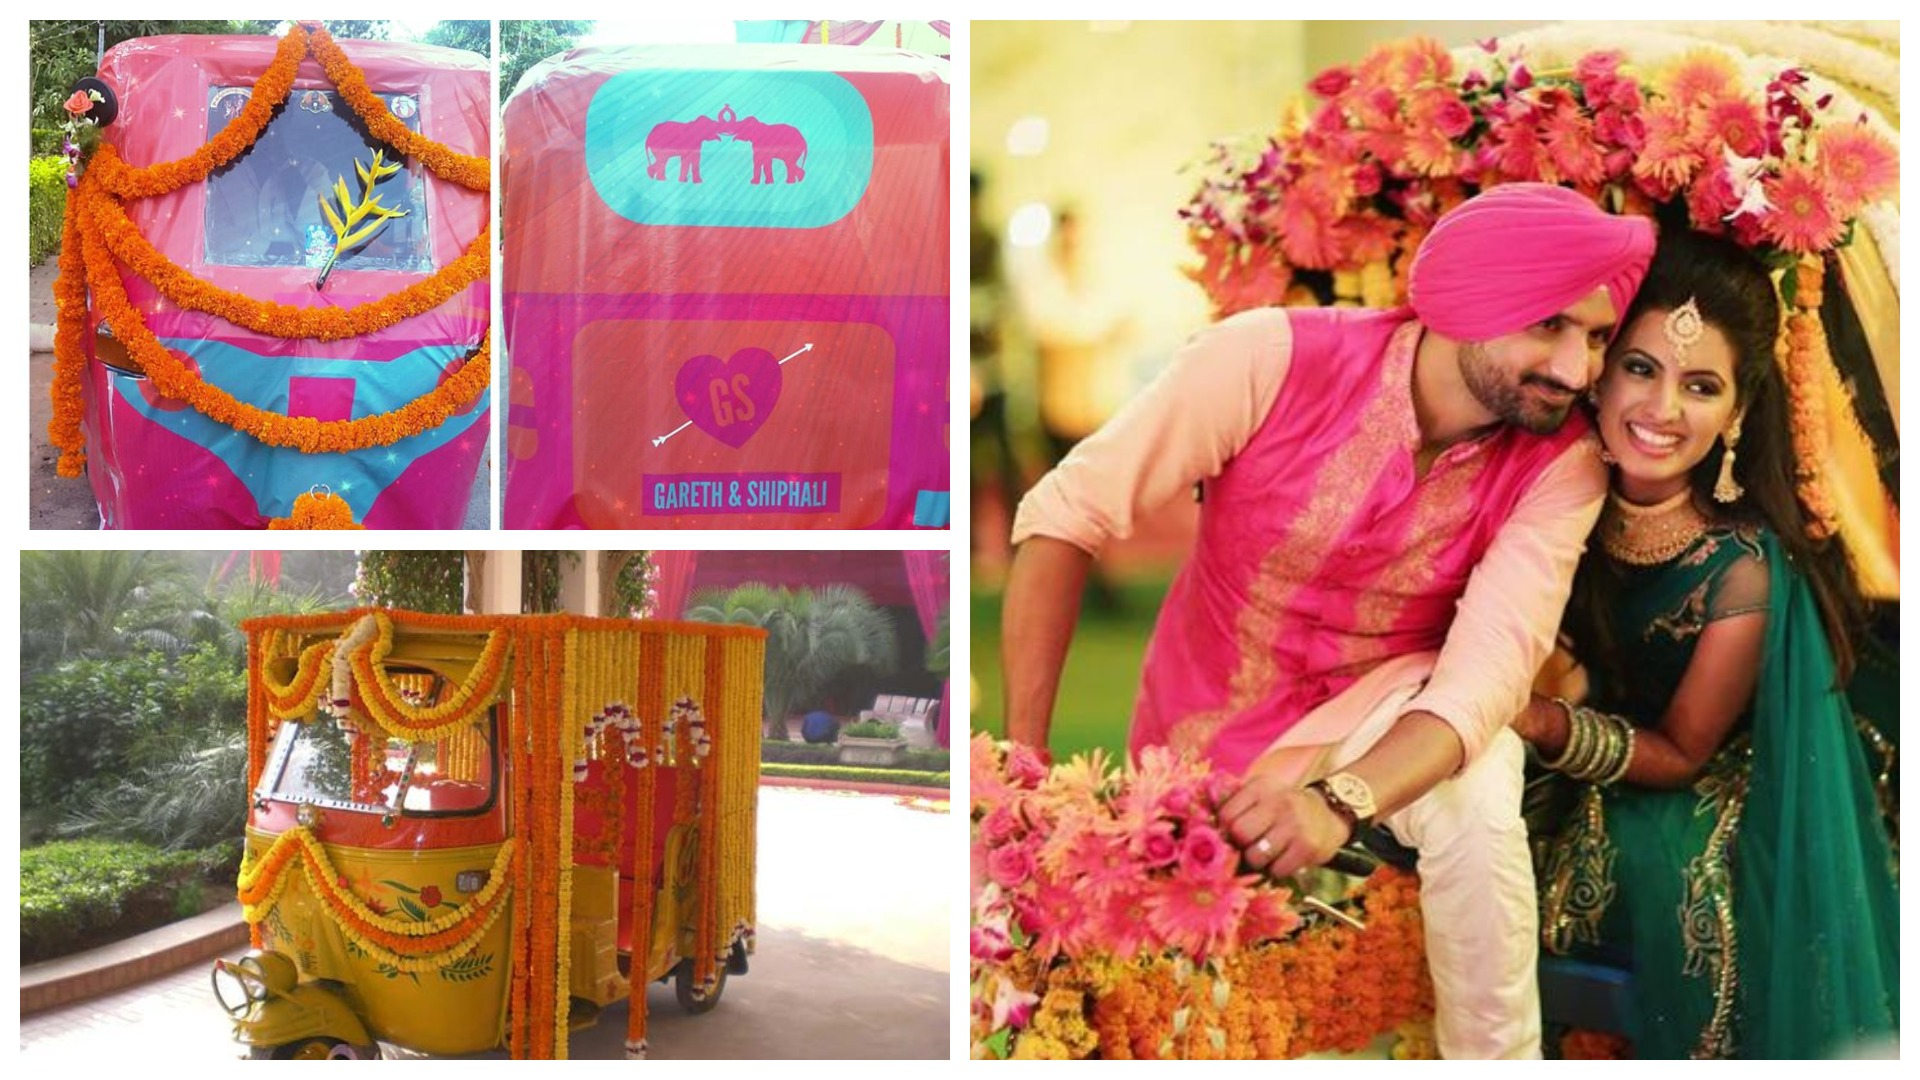 Exquisite Rick and Auto at Indian Weddings